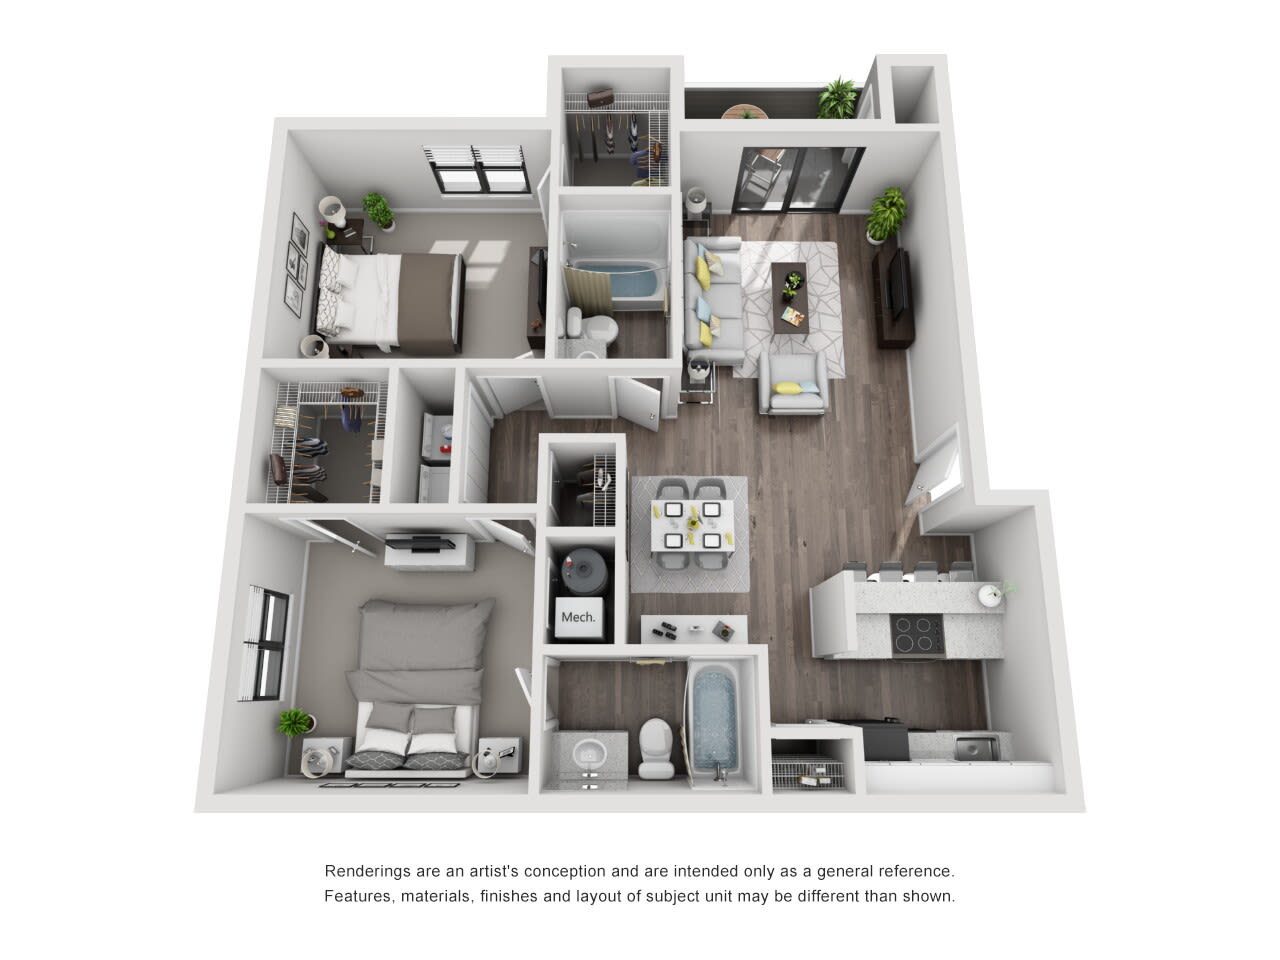 B2 2 bed 2 bath at The Alcove